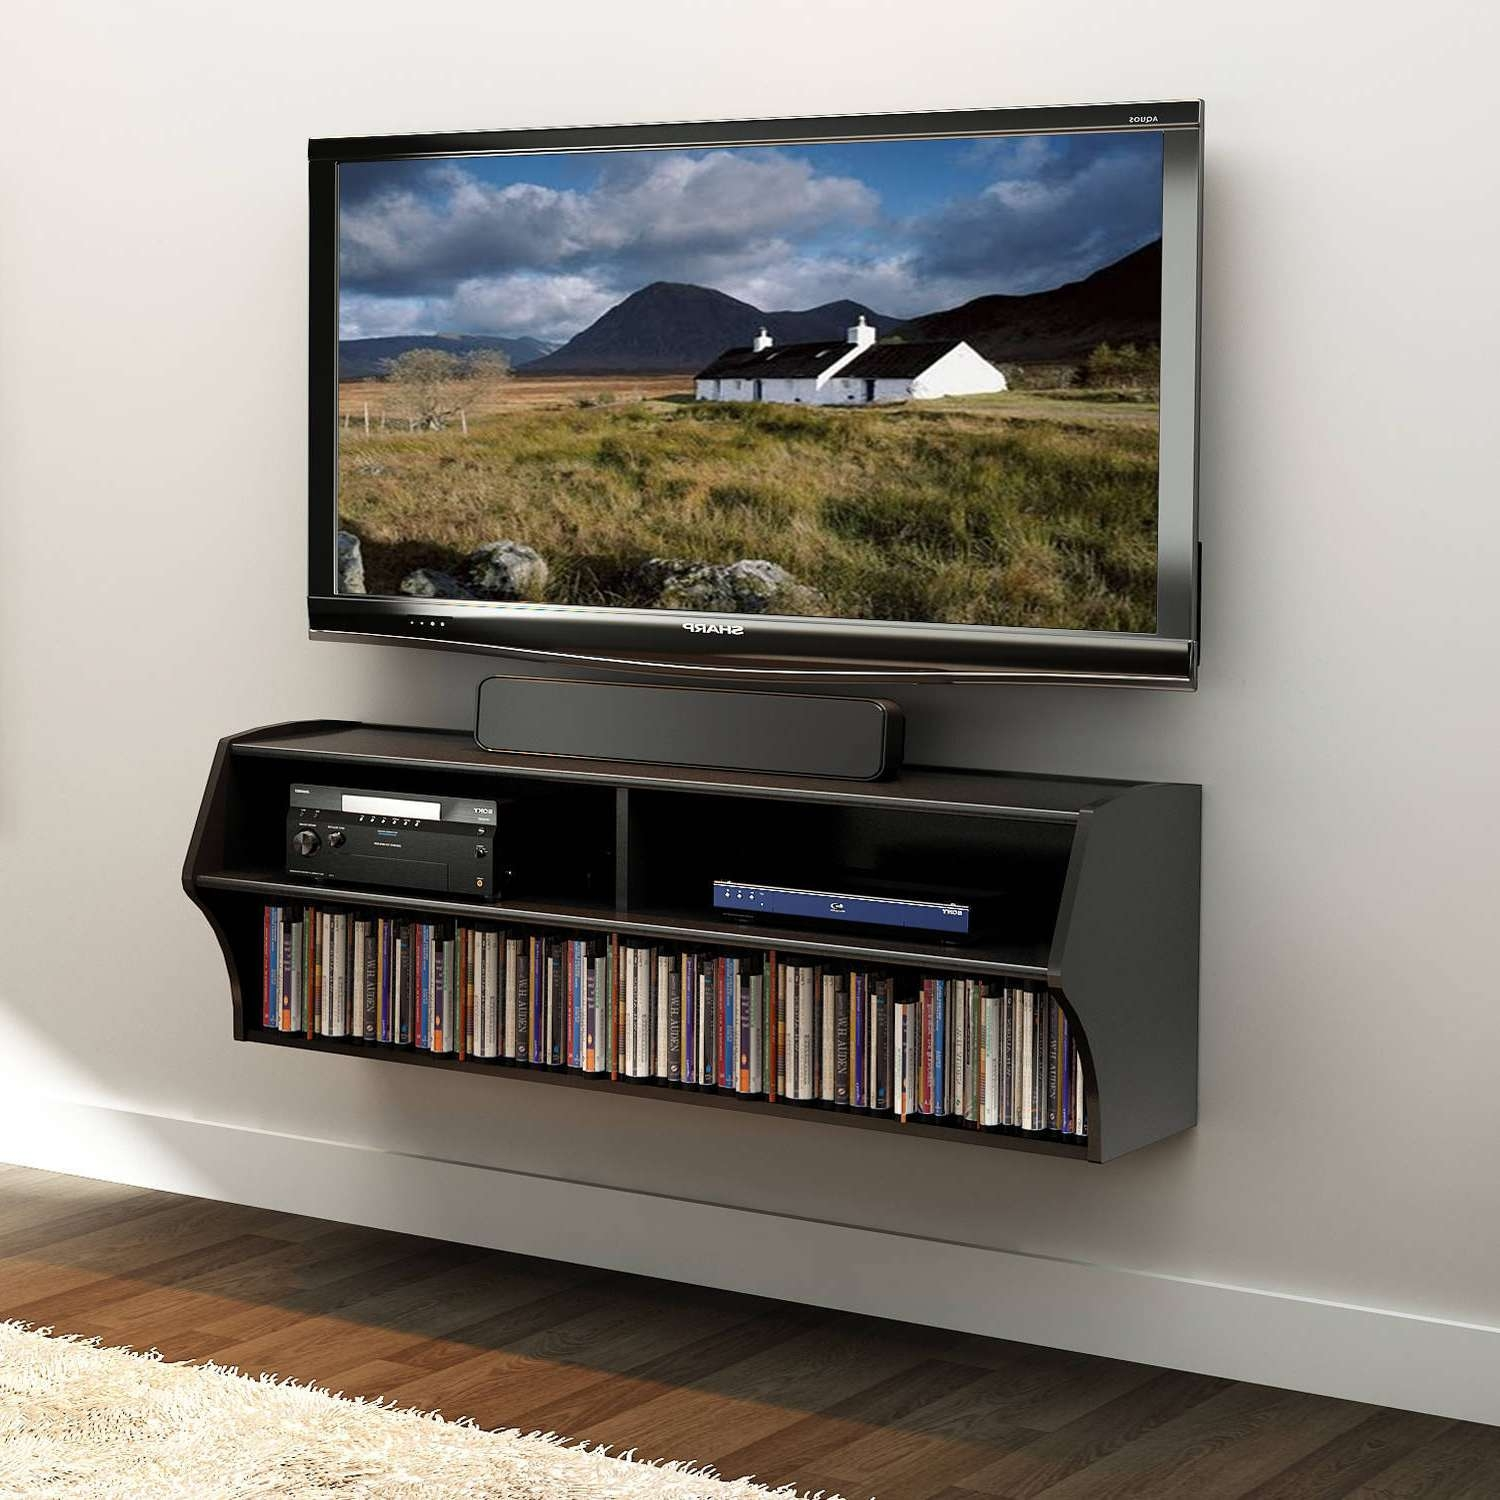 Tv : Gripping 24 Inch Wide Tv Stands Amazing 24 Inch Wide Tv Within 24 Inch Wide Tv Stands (View 5 of 15)